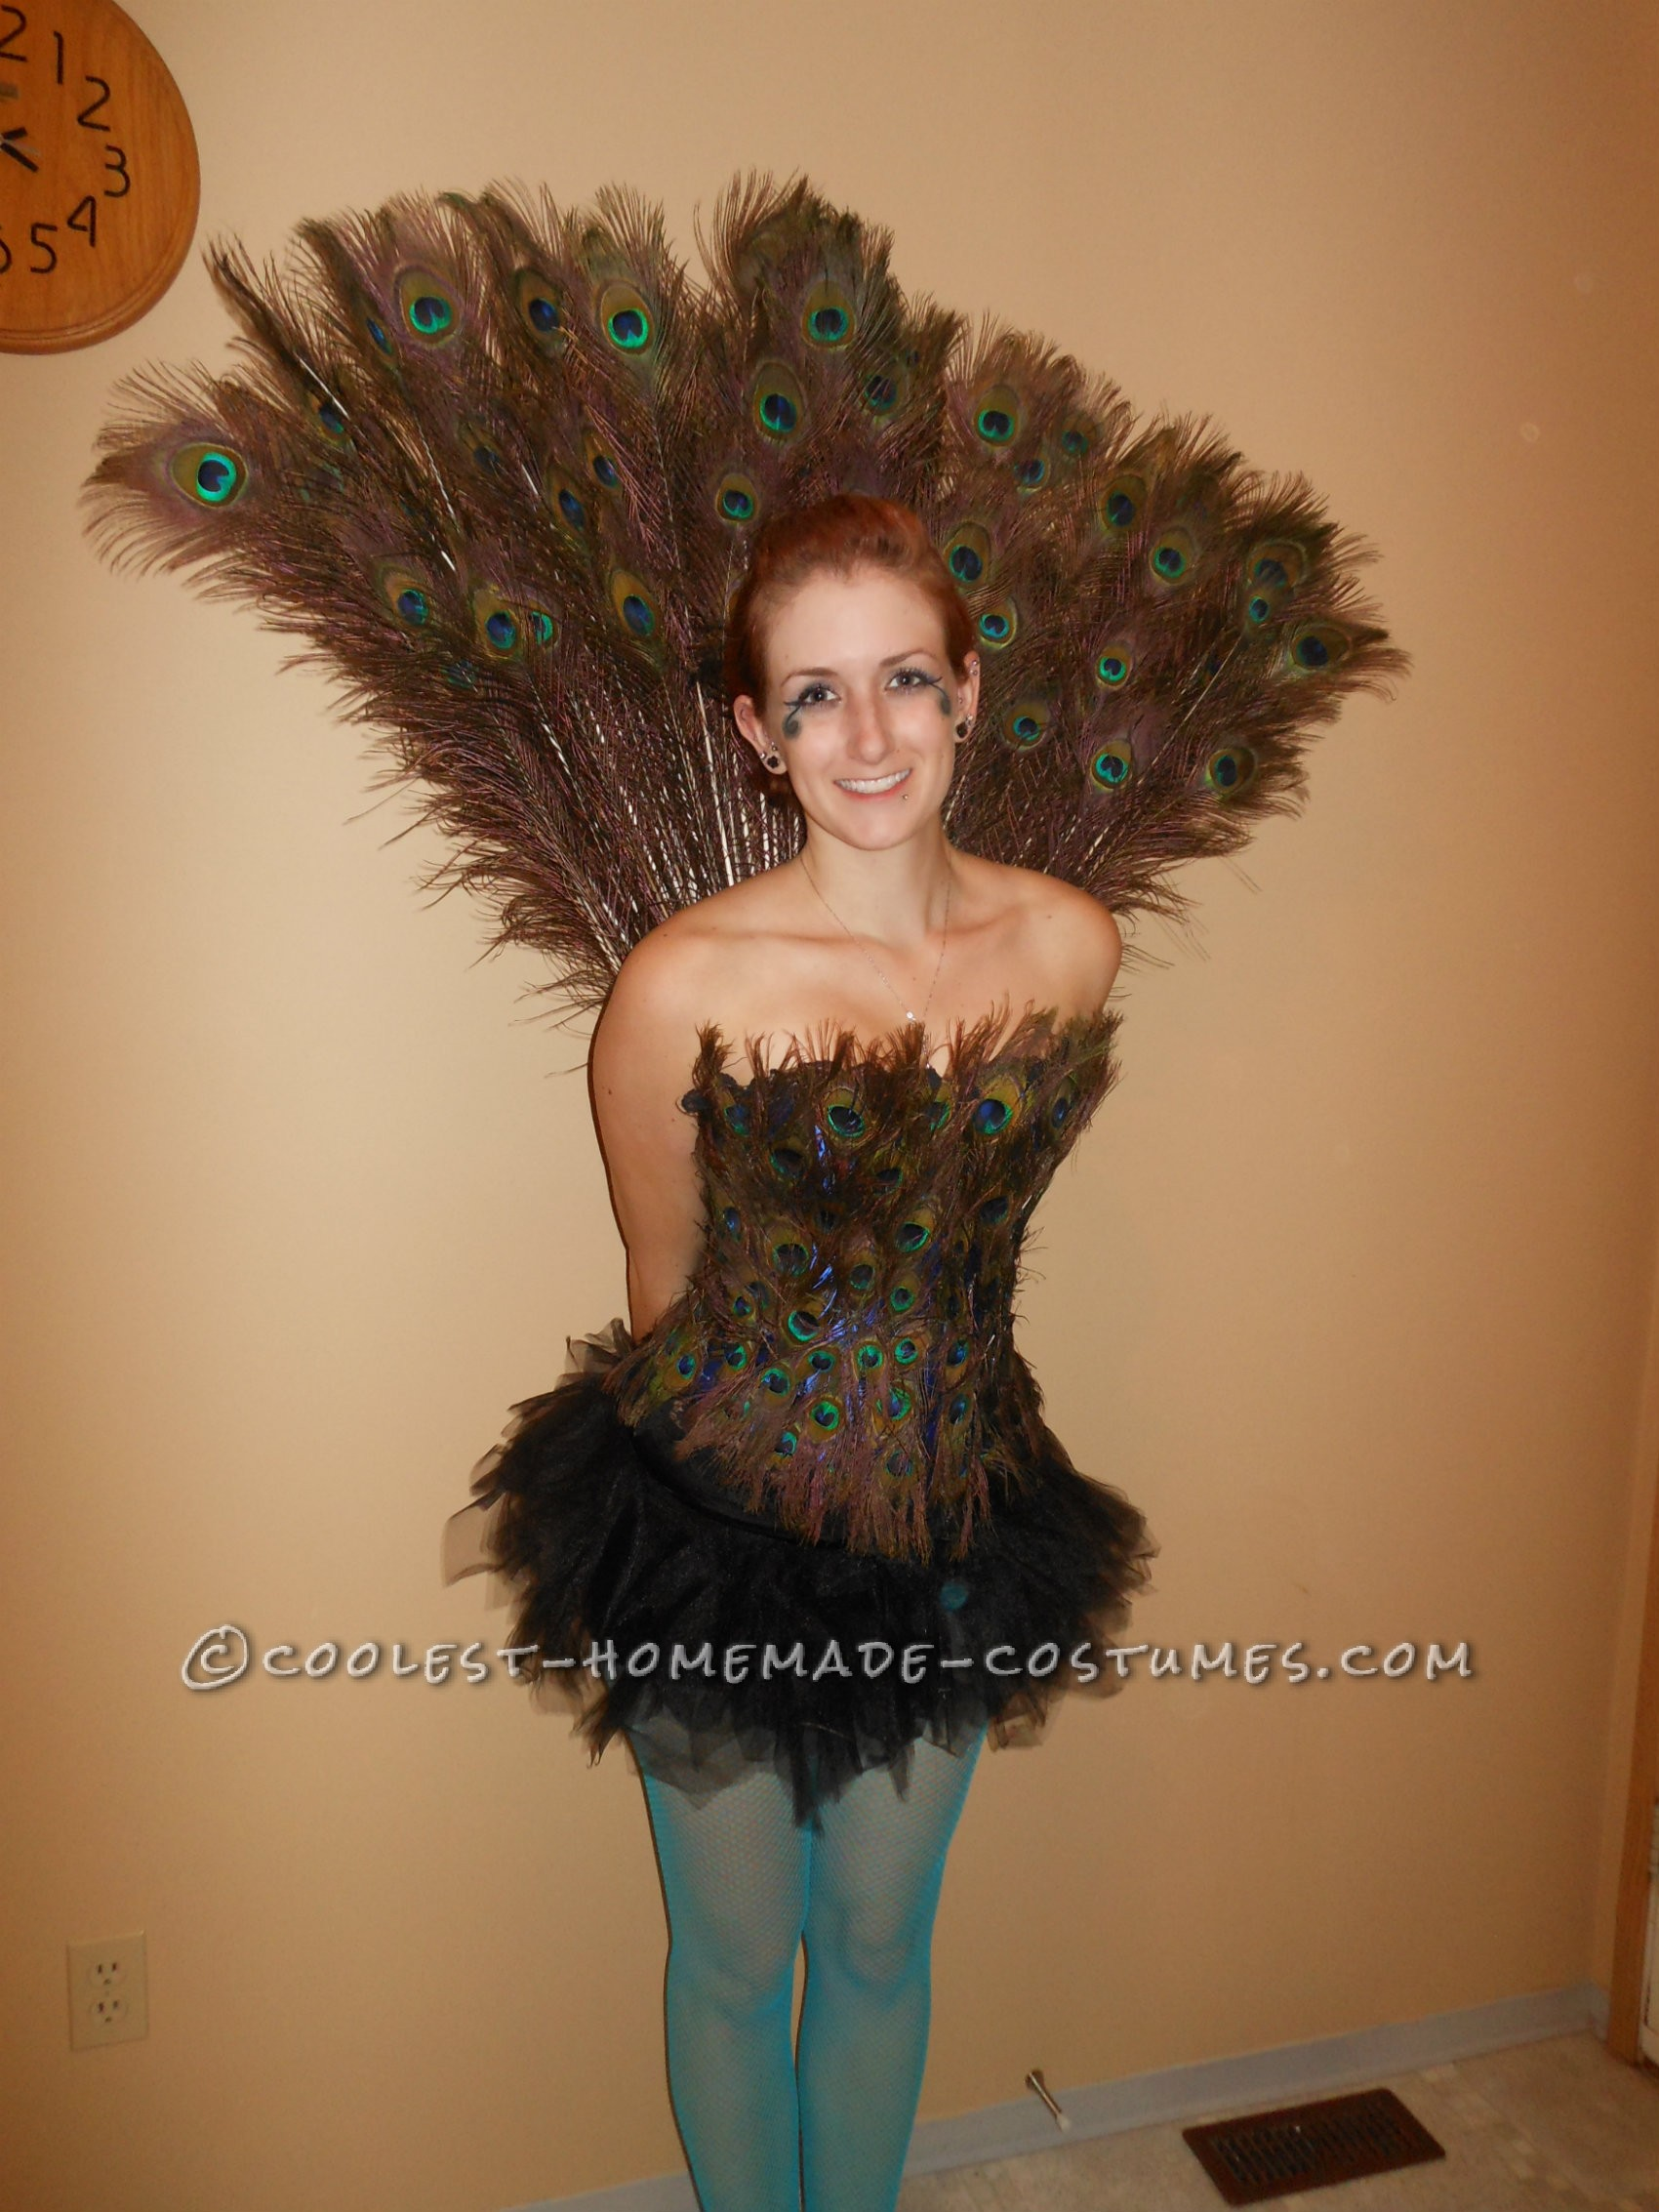 I have wanted to be a peacock for Halloween for several years now, and this year I finally decided to make my dream come true and make my own peacock